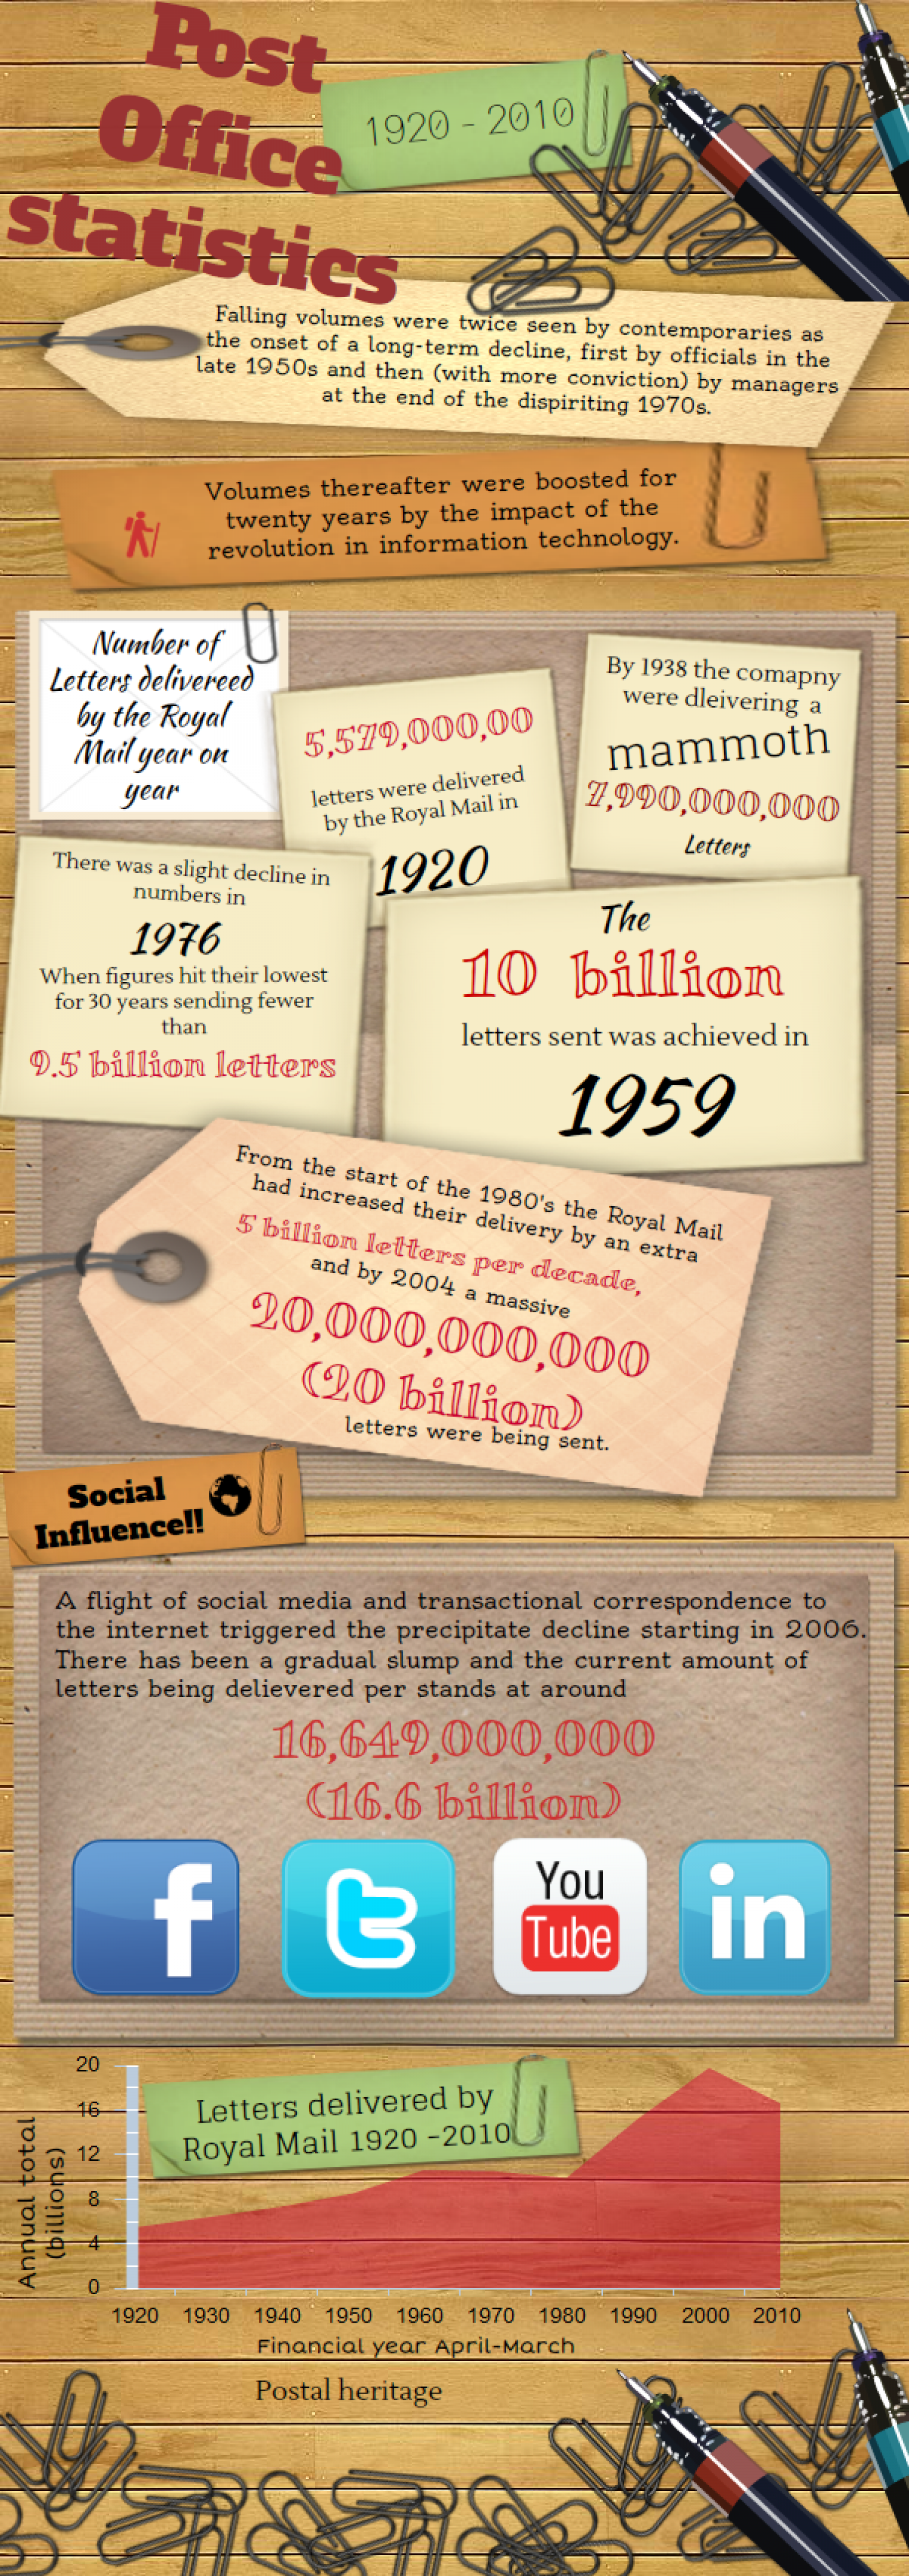 Post Office statistics Infographic